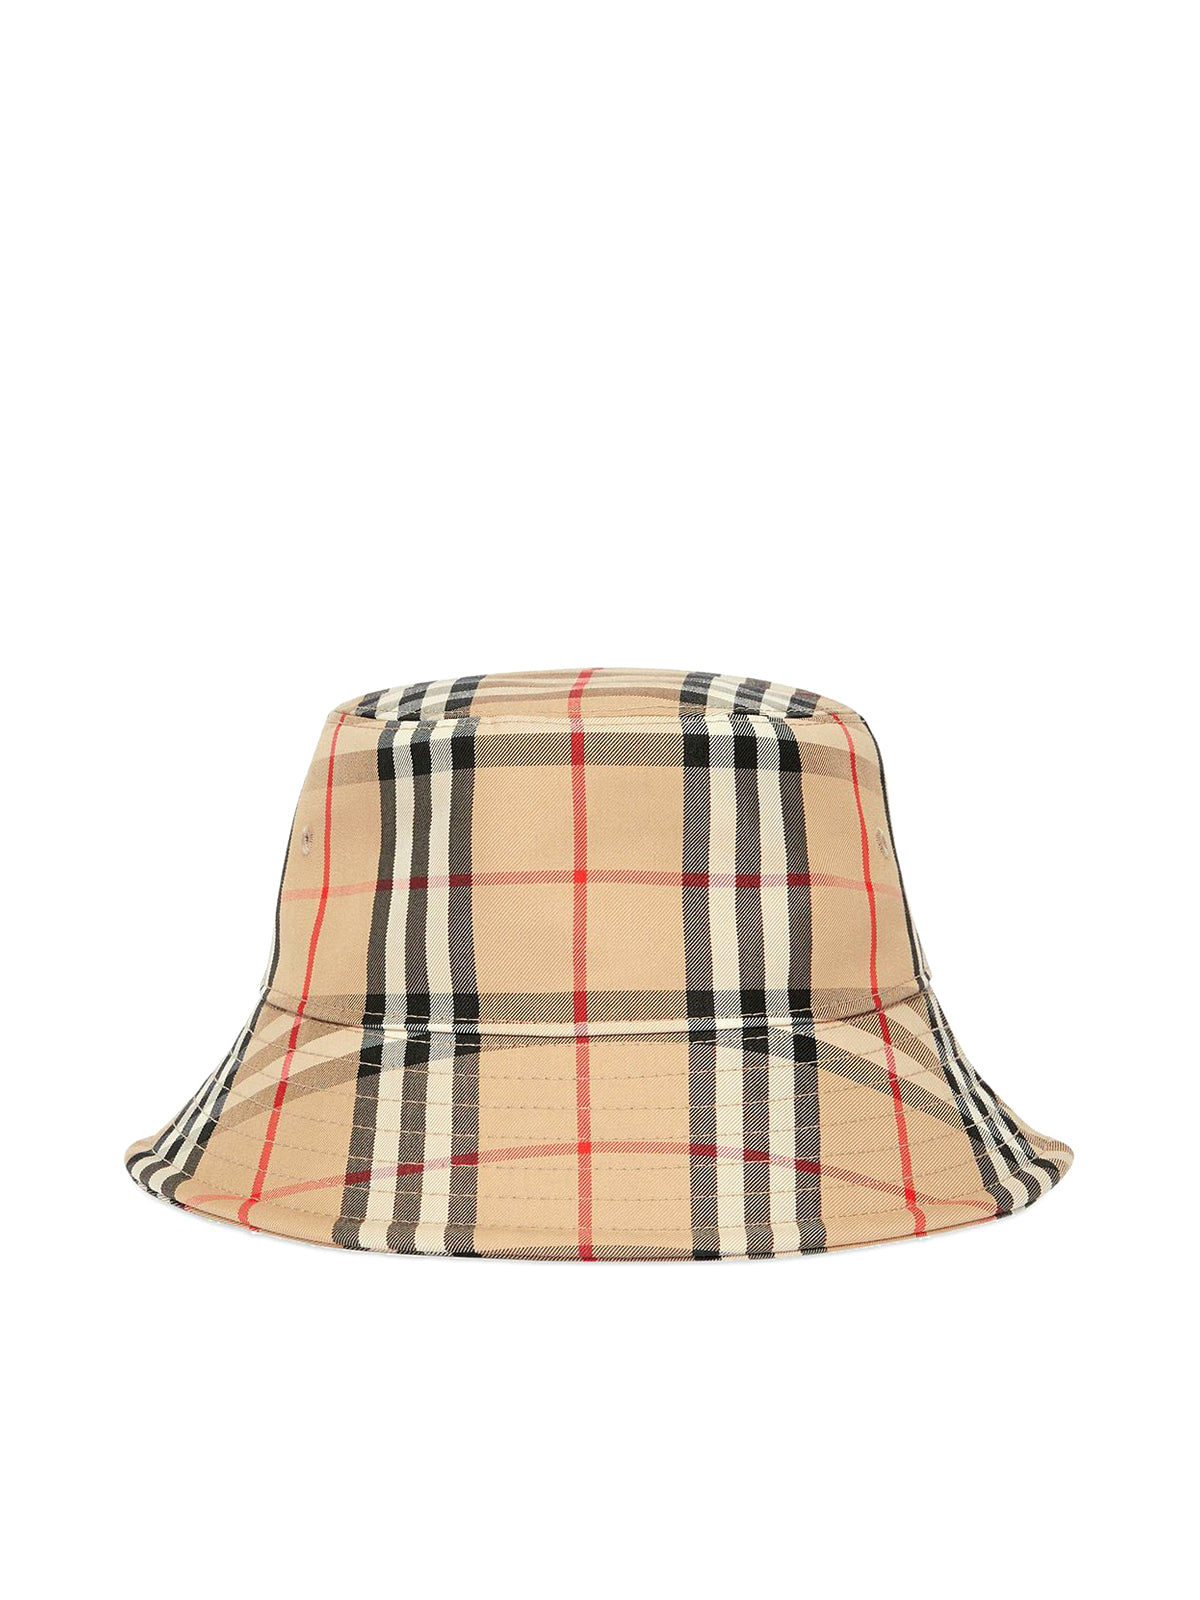 Vintage Check bucket hat